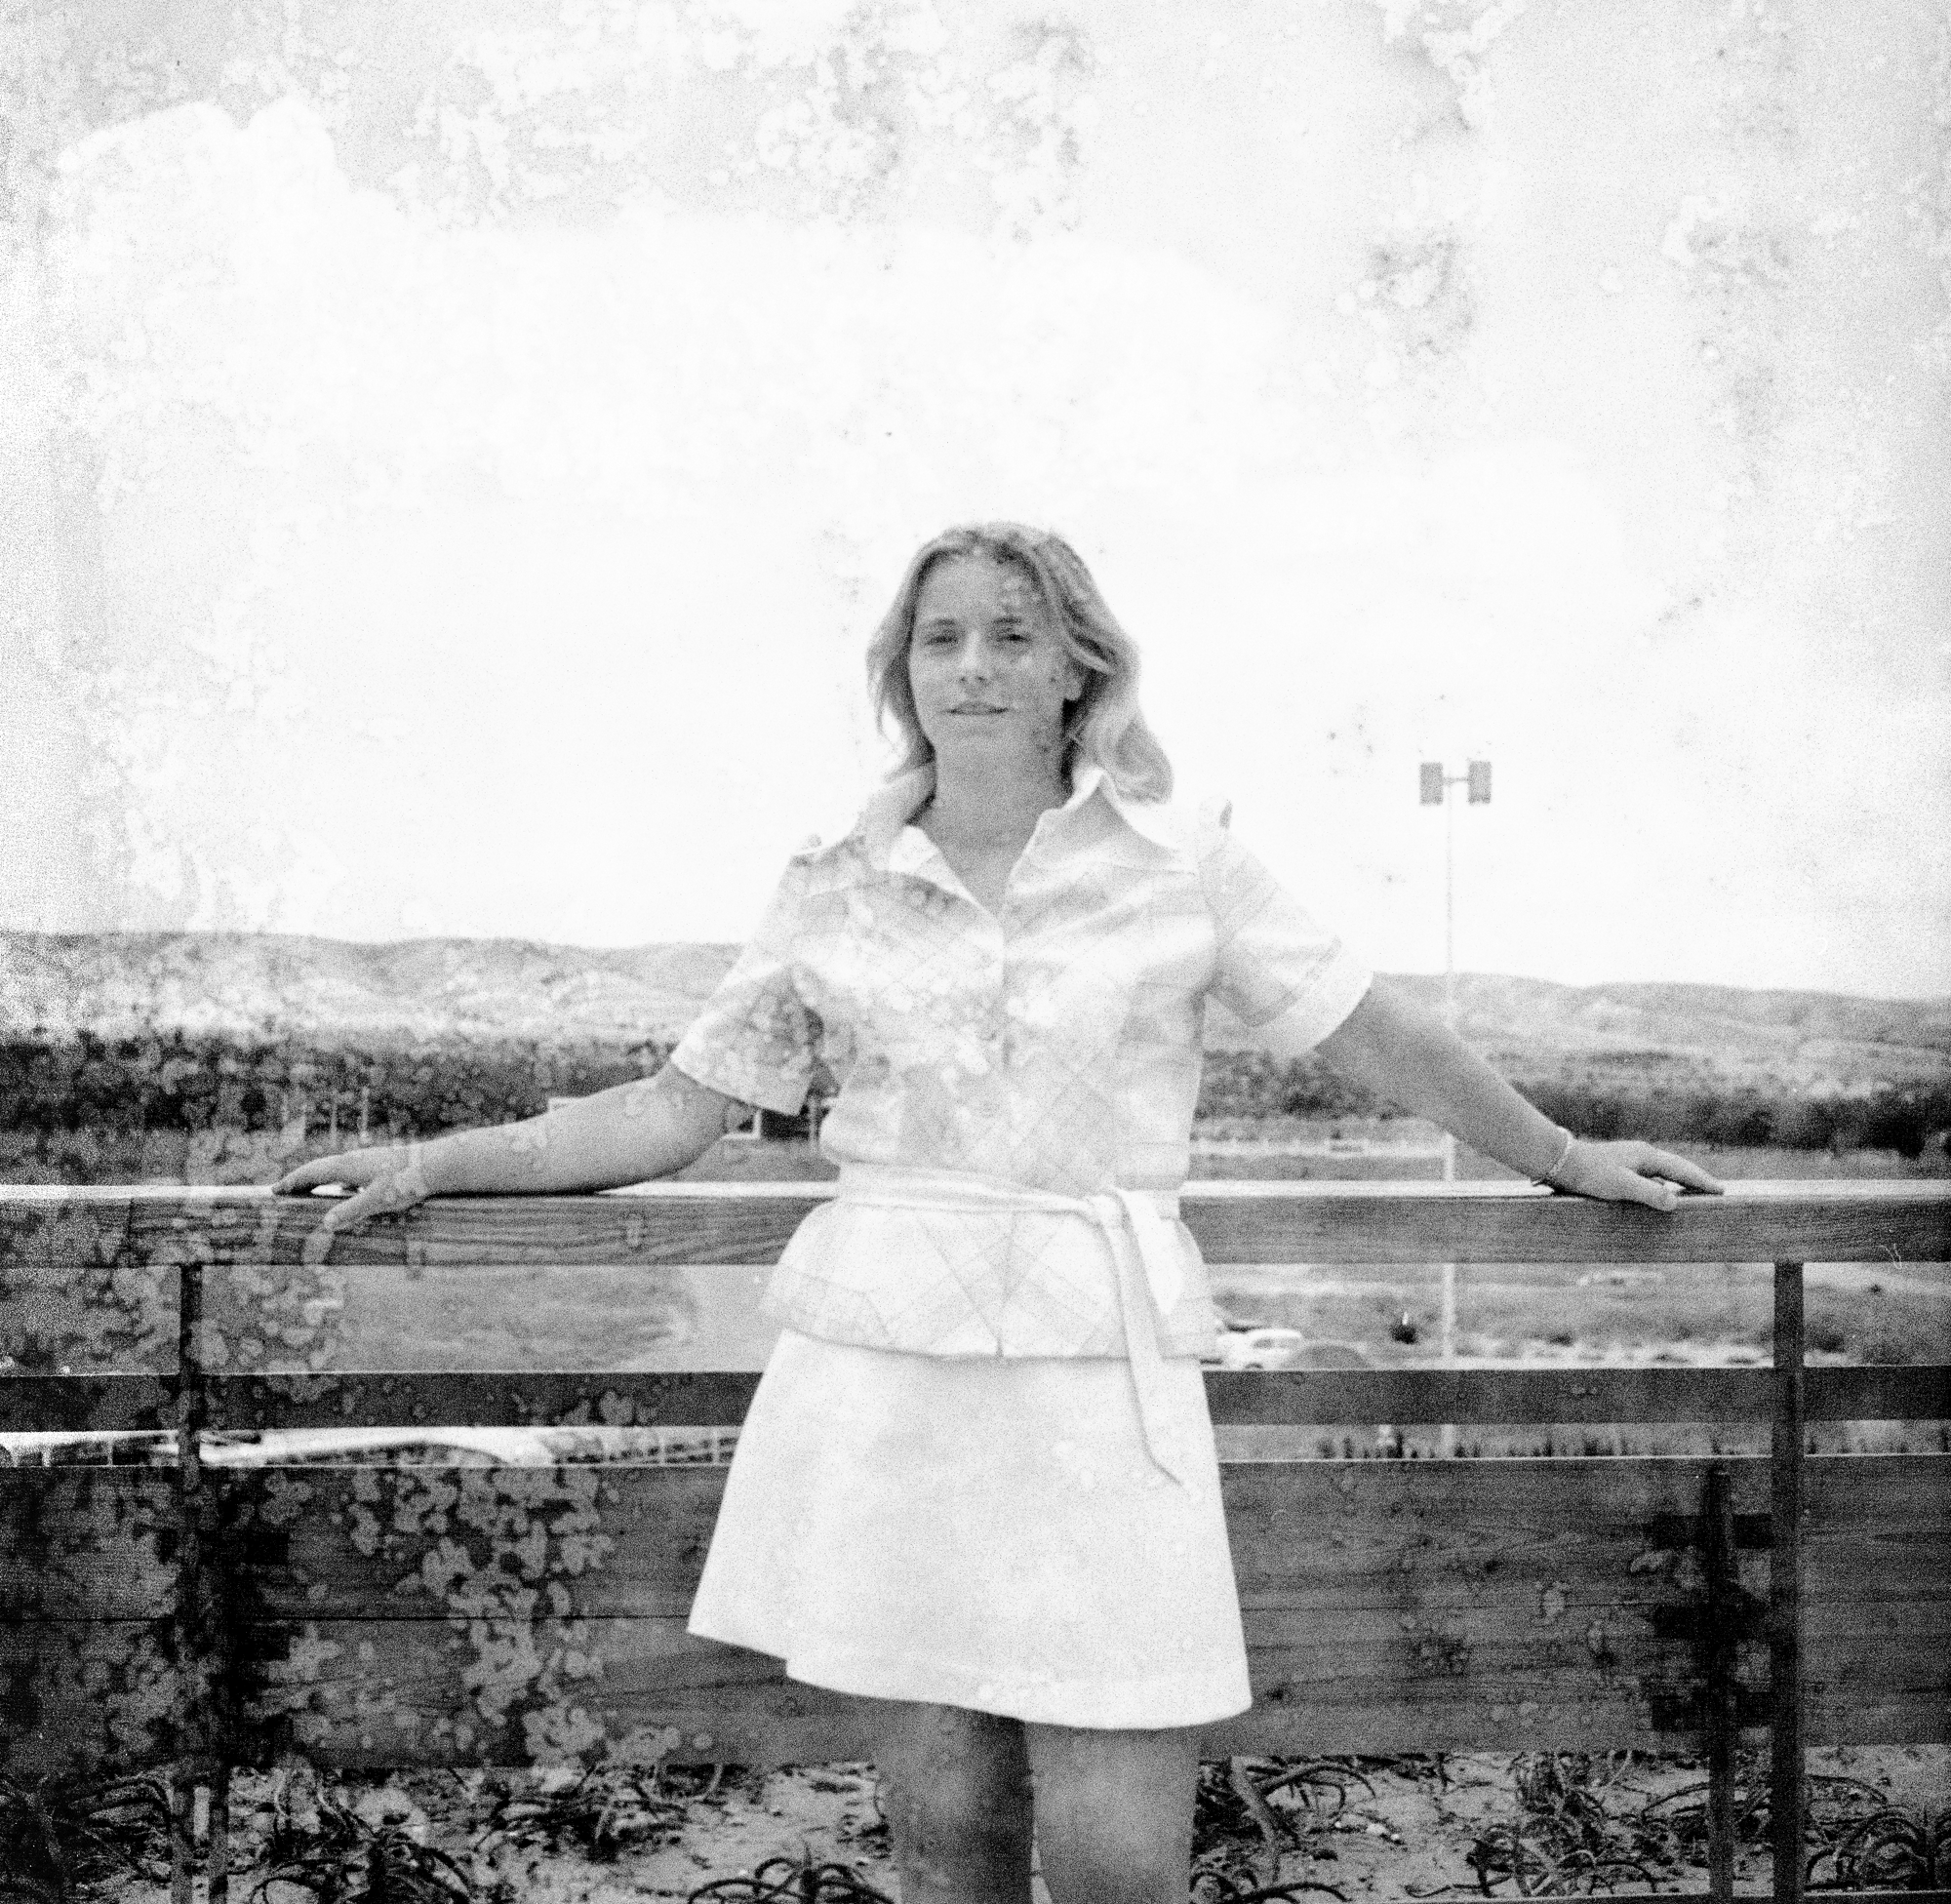 Image Description: In this image, which is similar to the one above, we have a teen or young adult stood in front of some fencing which is the same as the images with two young children (boy and girl) which are placed after this photograph. The teen/young adult is leaning on the fencing, both her arms on either side placed on the top plank of the fence. She is wearing a white skirt, a light coloured plaid shirt with sleeves that end just before the elbow. The young lady has shoulder length light coloured hair. Not much scene in this photograph, except for sky, some green-land, a car park and the fencing behind her.